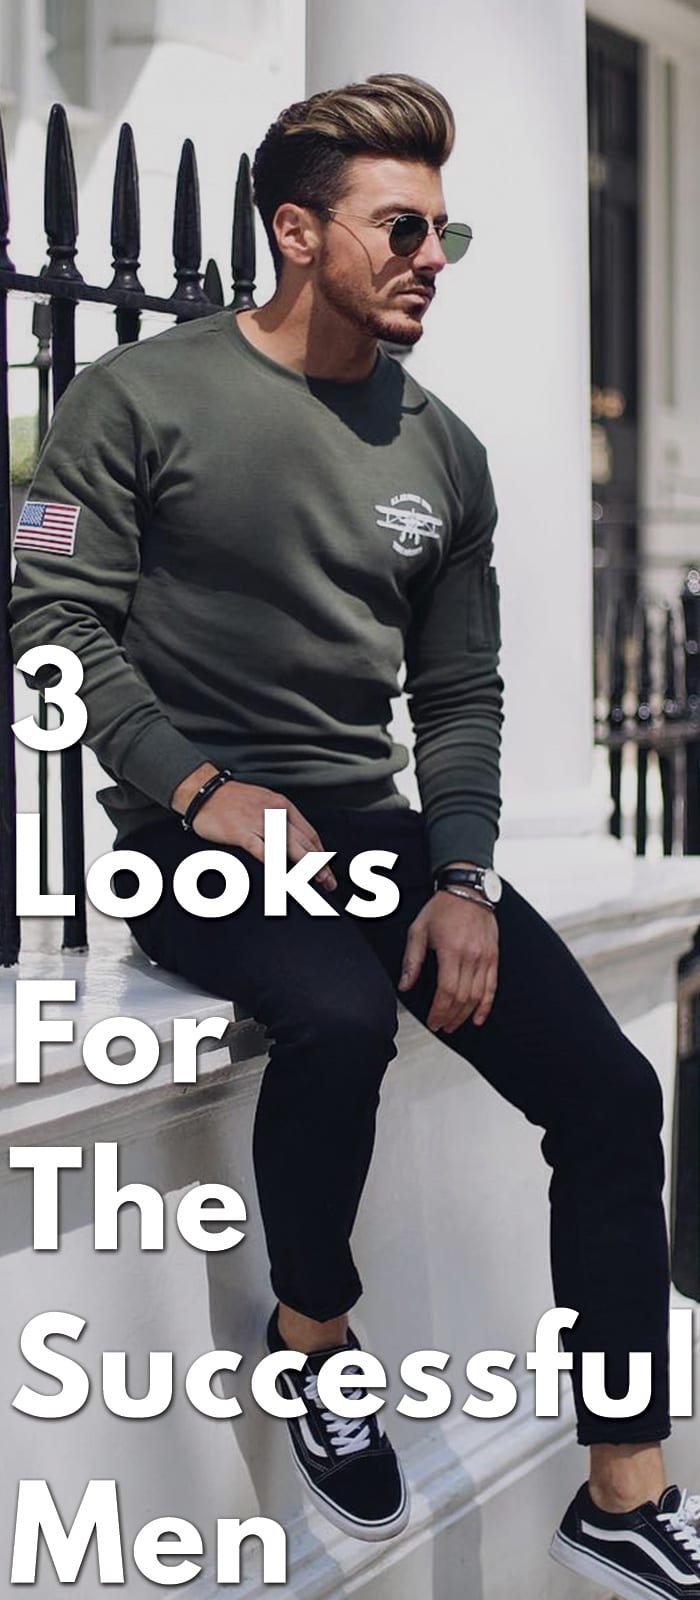 3 Looks For The Successful Men in 2018